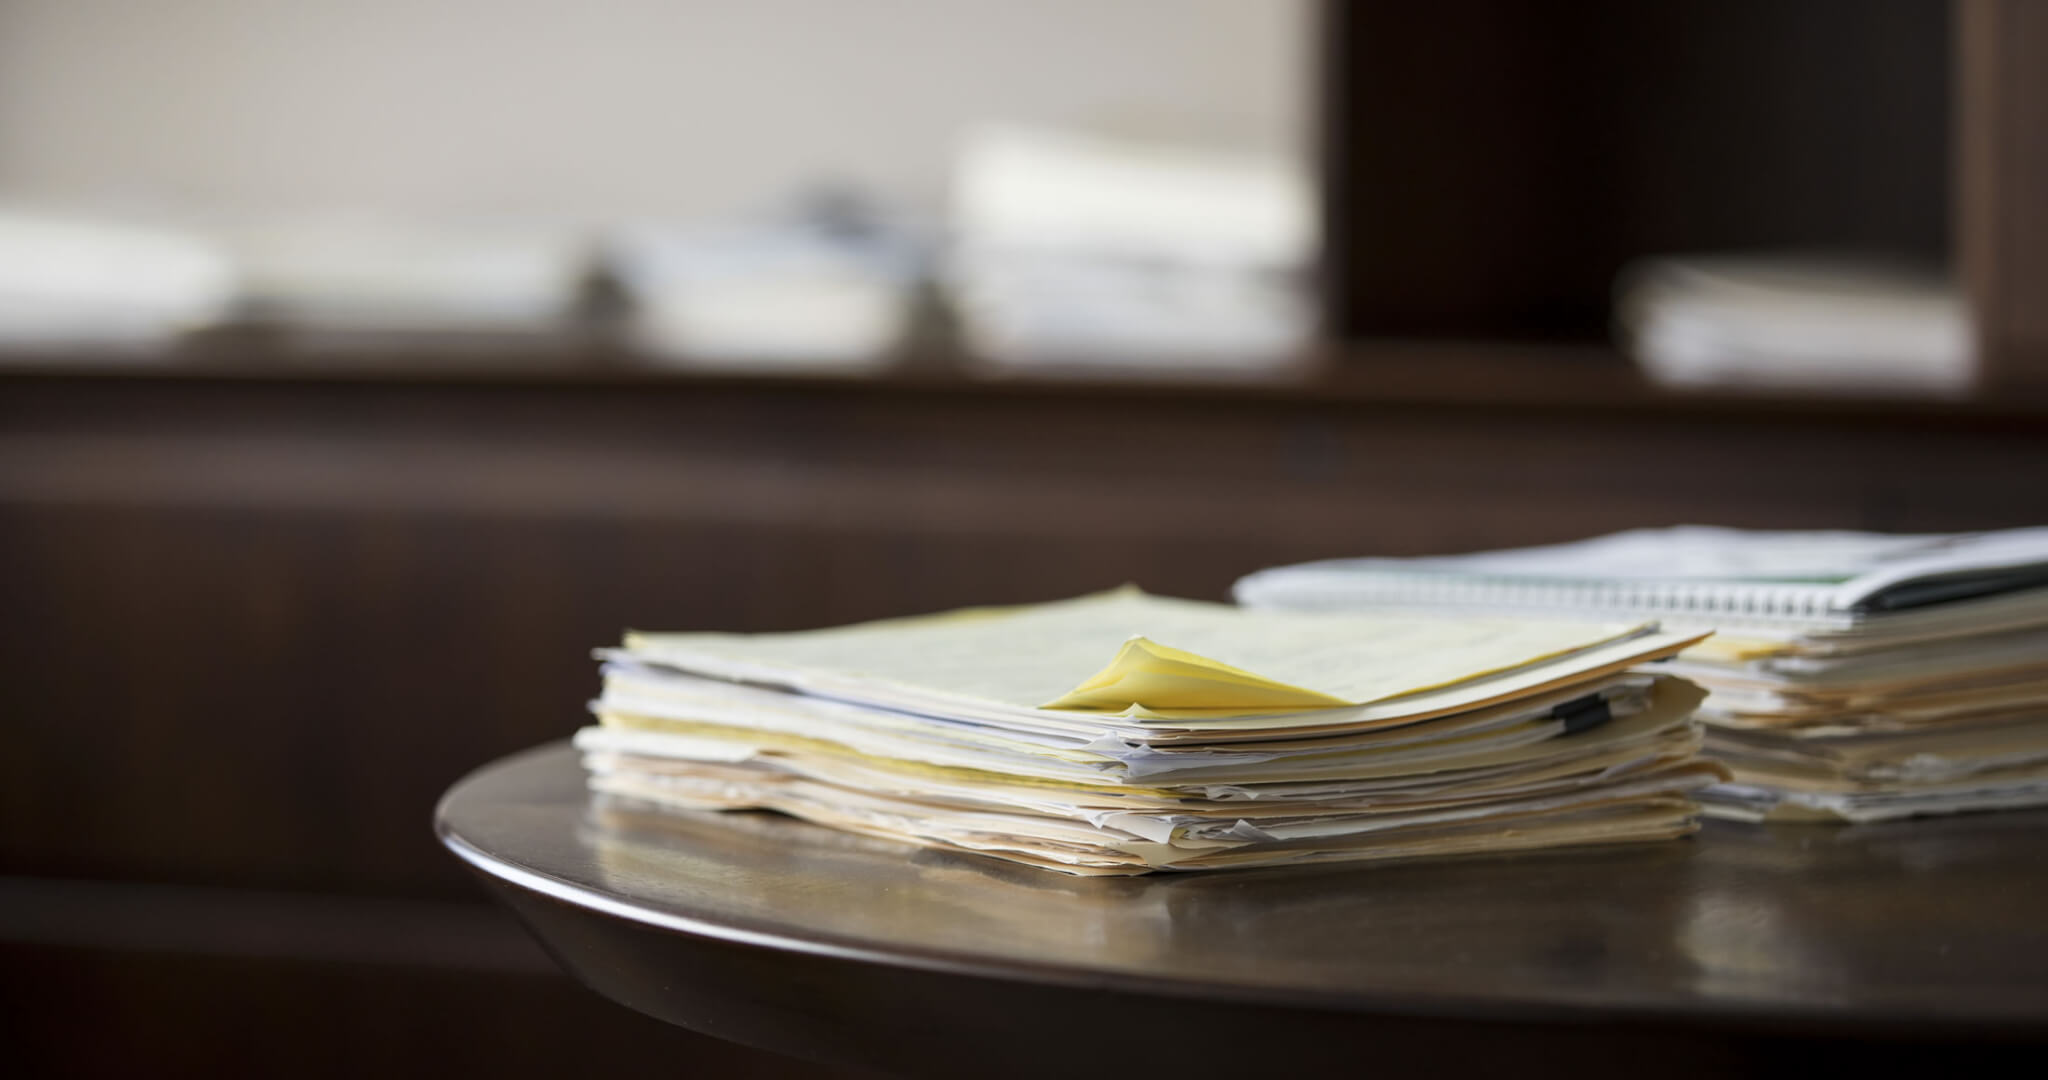 Stack of documents on a table